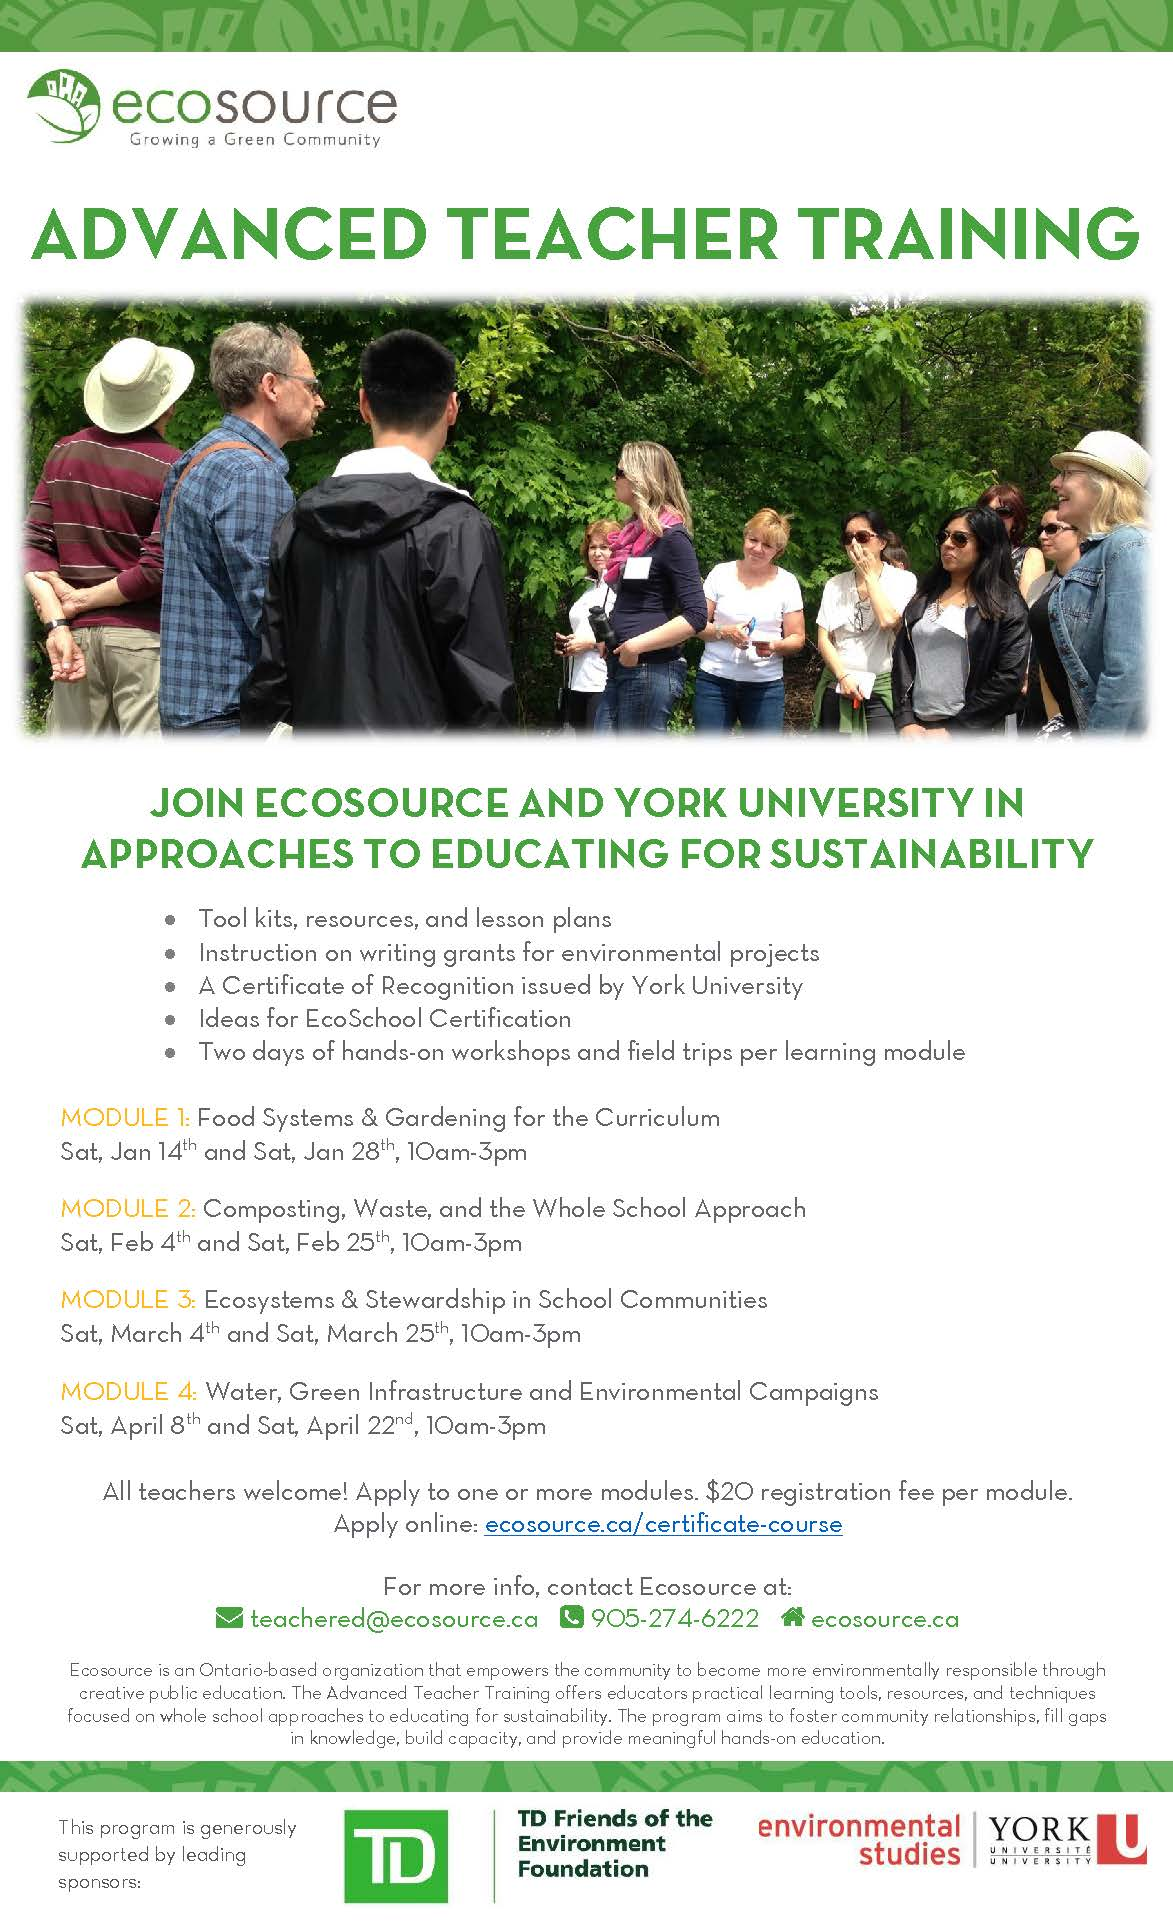 MODULE 4: Water, Green Infrastructure and Environmental Campaigns